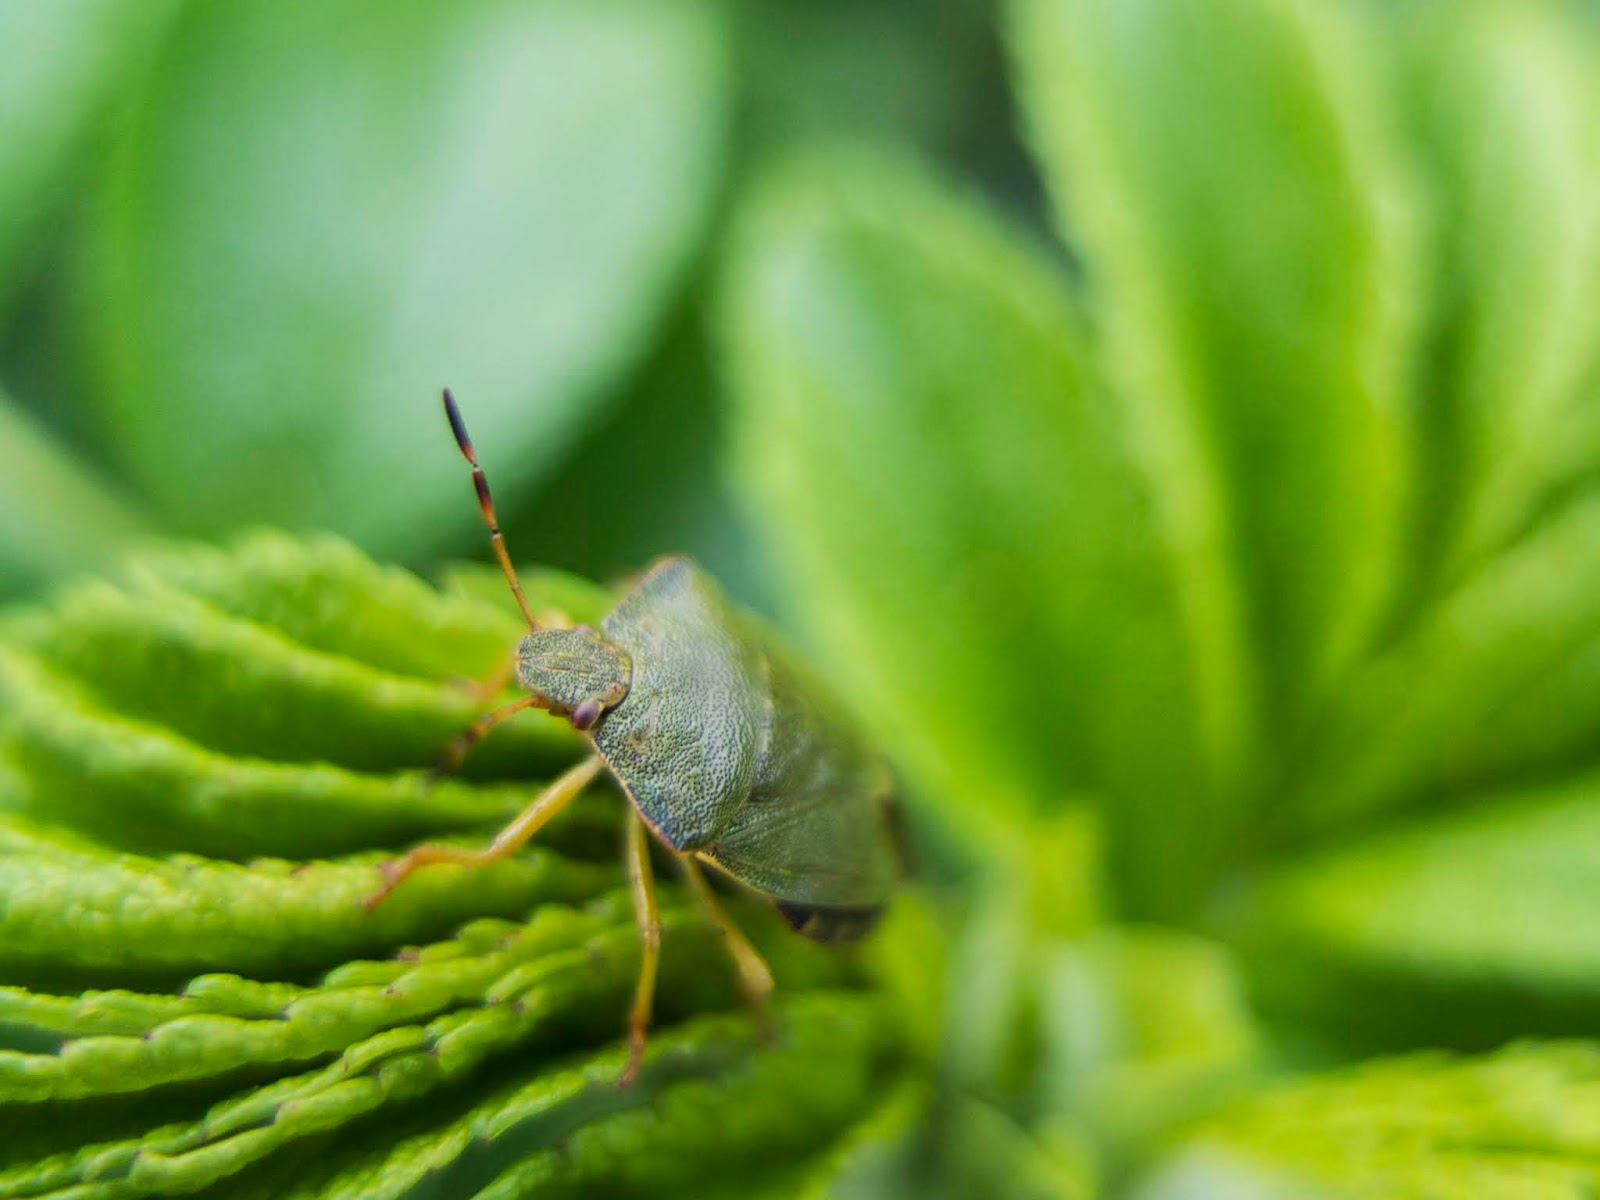 Macro of a Green Stink Bug on rose leaves.